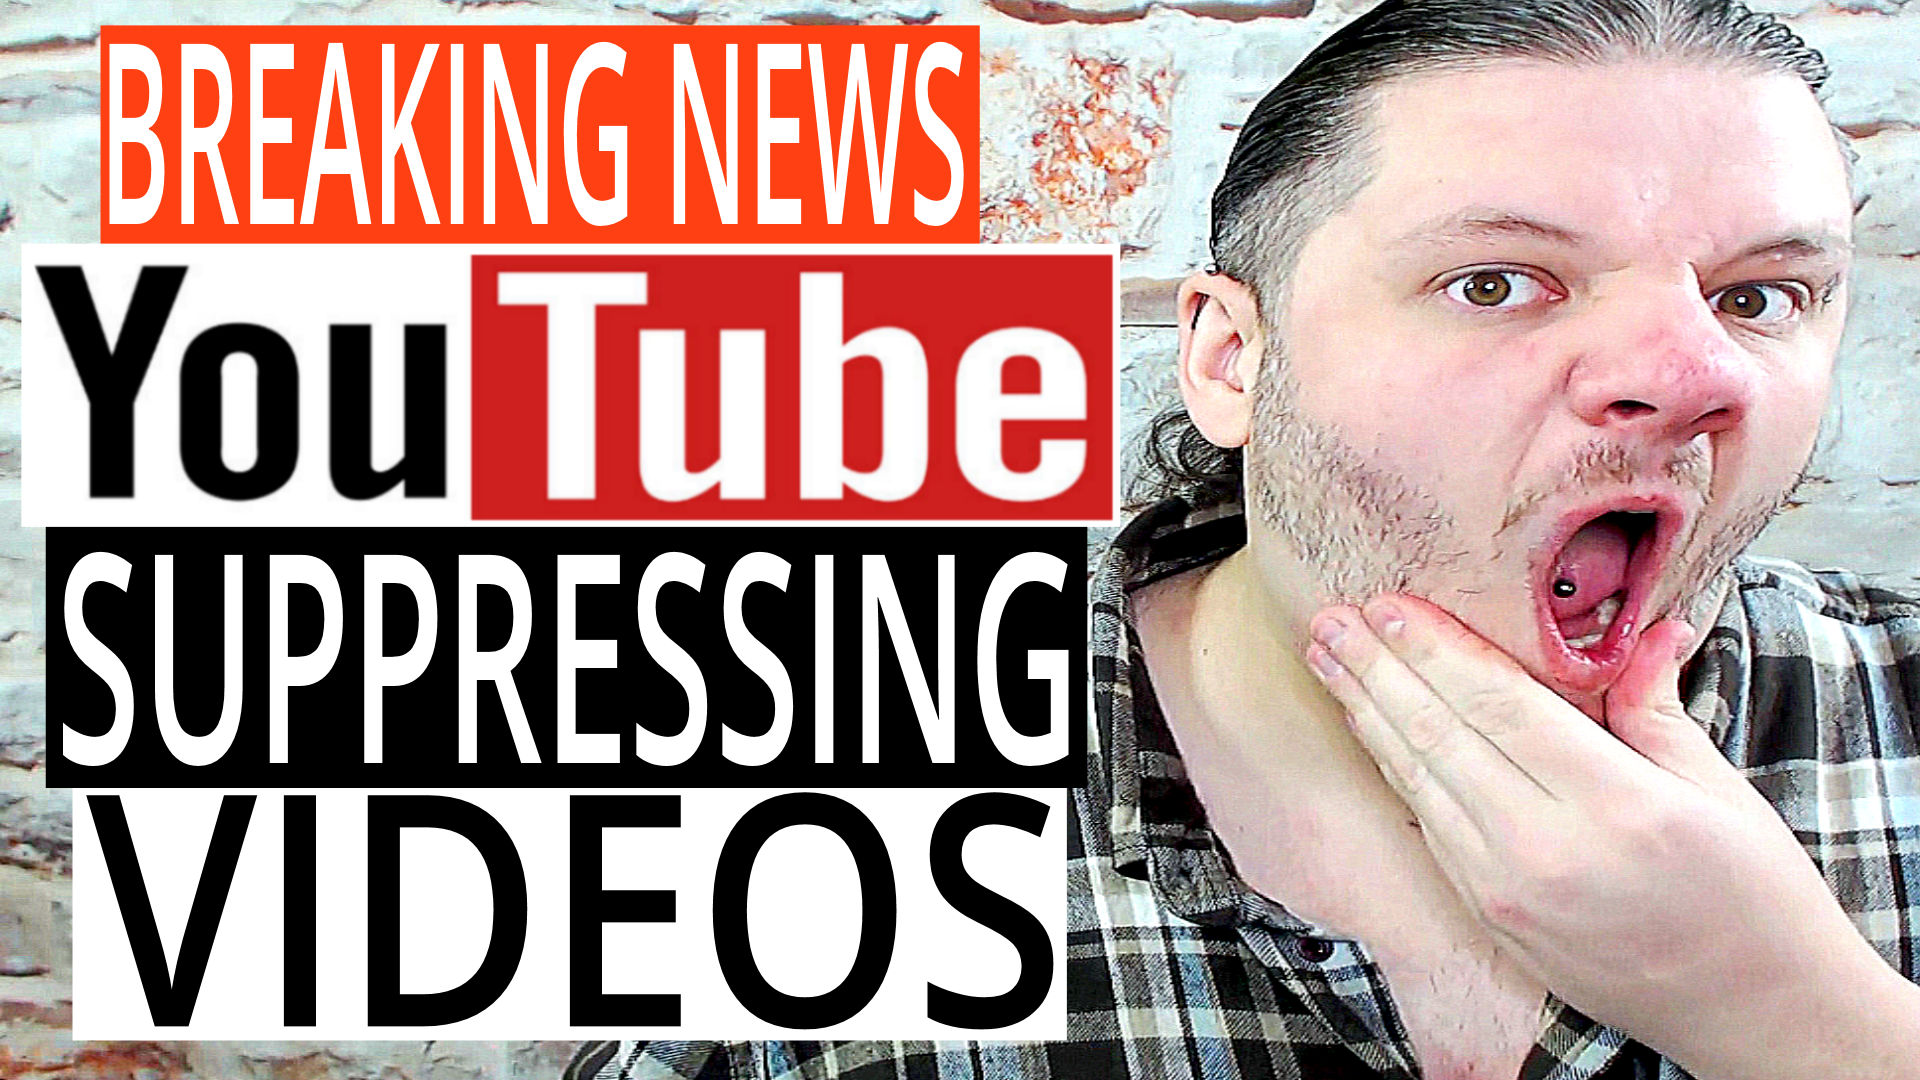 YouTube Suppressing Videos,alanspicer,youtube suppression bot,Philip DeFranco video suppression,YouTube Suppression AI Bot,youtube suppression ai,youtube ai suppressing videos,YouTube Suppressing Philip Defranco,youtube ai suppressing views,youtube suppressing views,suppression bot,philip defranco show,the philip defranco show,boogie2988,new youtube ai,youtube view suppression,YouTube Suppression,YouTube AI,philip defranco,video suppression,YouTube Algorithm